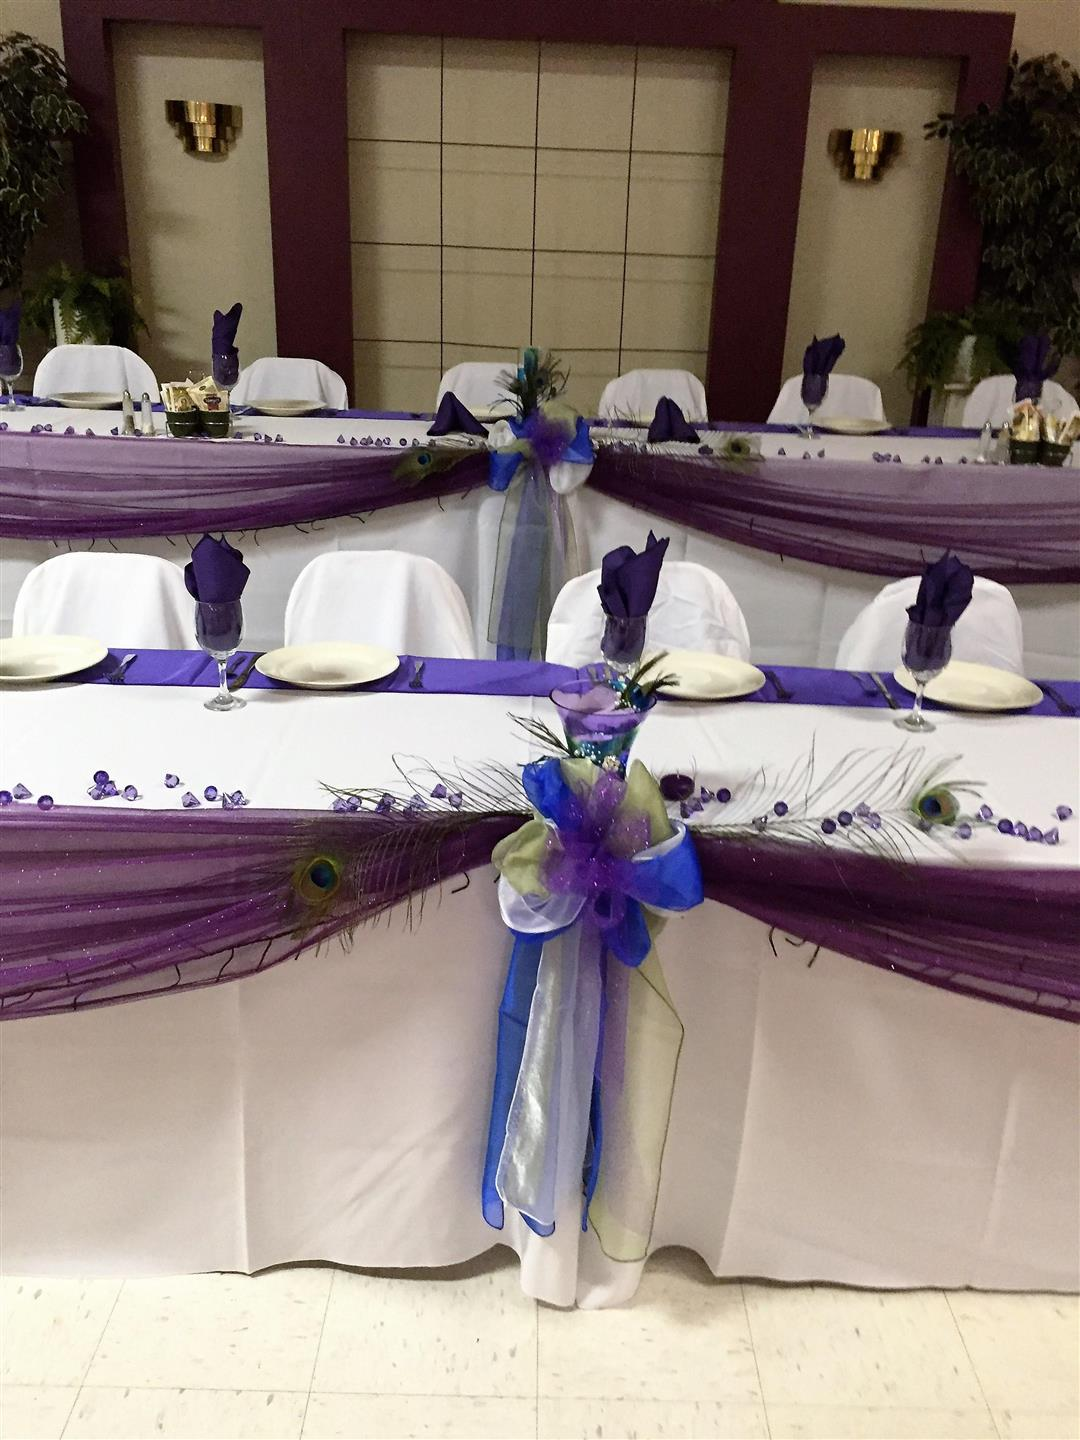 set of long tables setup with tablecloths, napkins in glasses and ribbon decorations